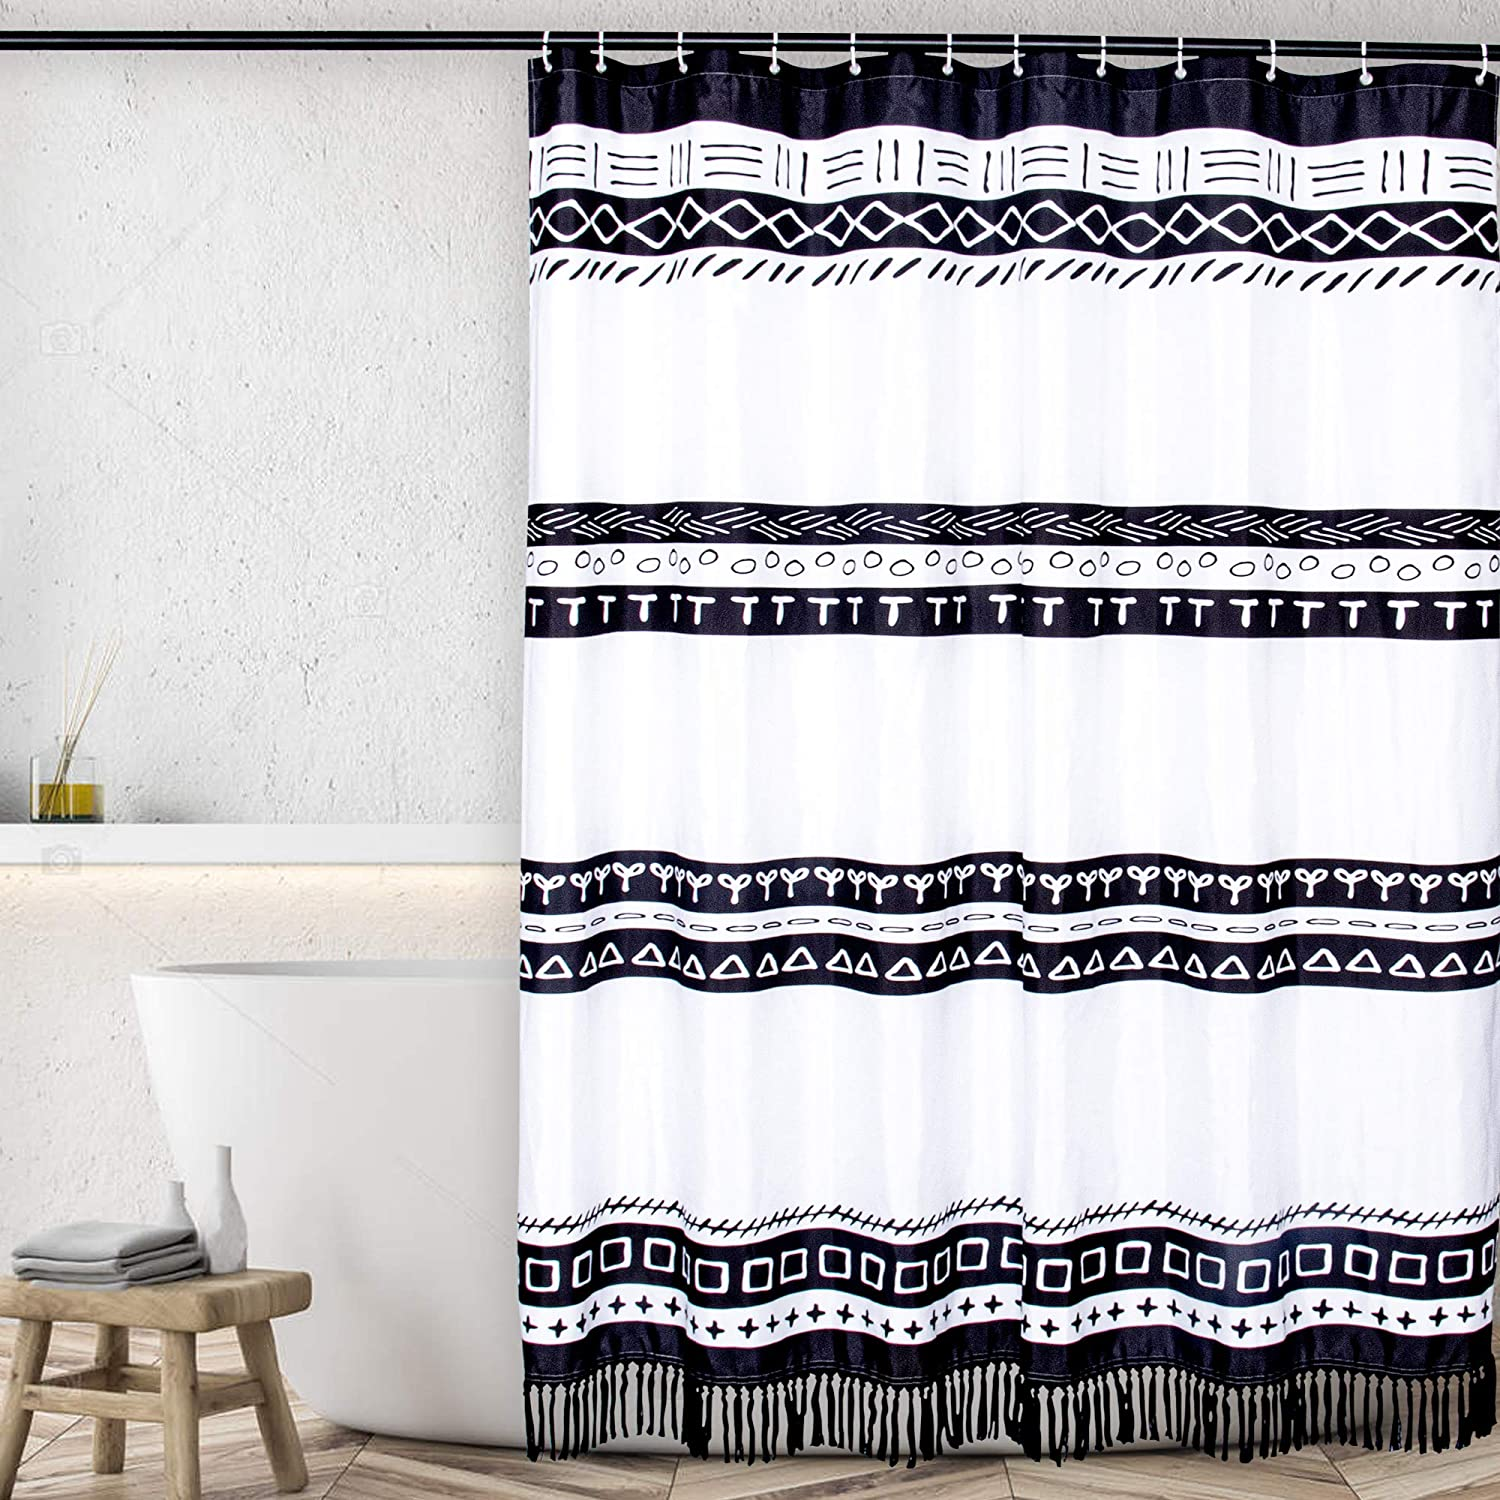 Jonhier Black and White Shower Curtain with Tassels, Boho Striped Geometric Modern Chic Pattern Waterproof Fabric Bathroom Curtains, Heavy Weighted Bath Decor Set with Hooks (72